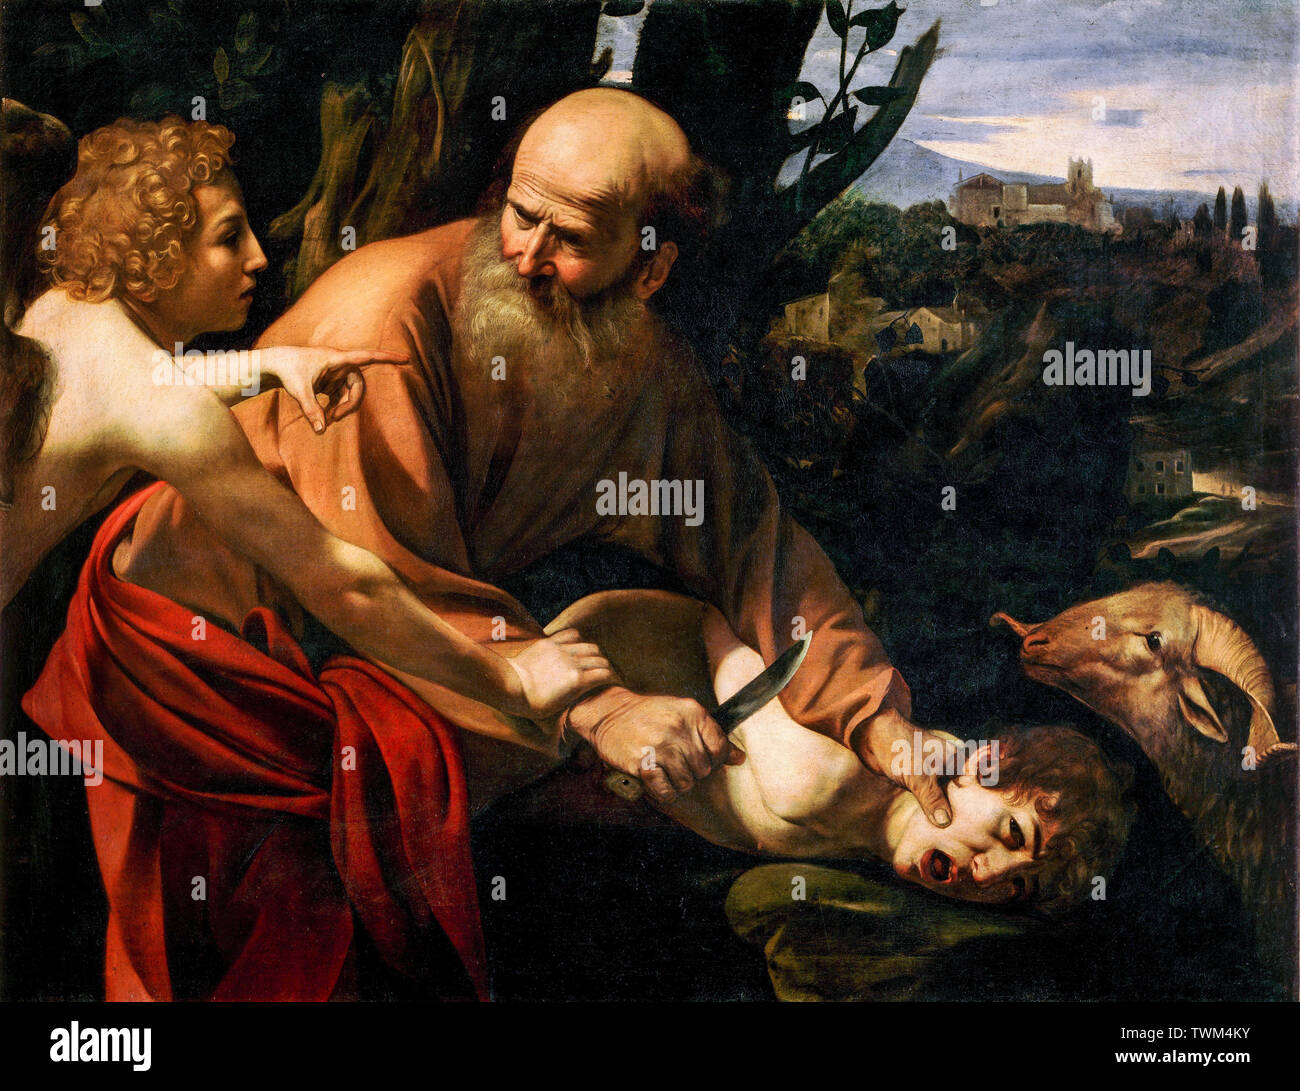 Caravaggio, Sacrifice of Isaac, painting, circa 1603 - Stock Image